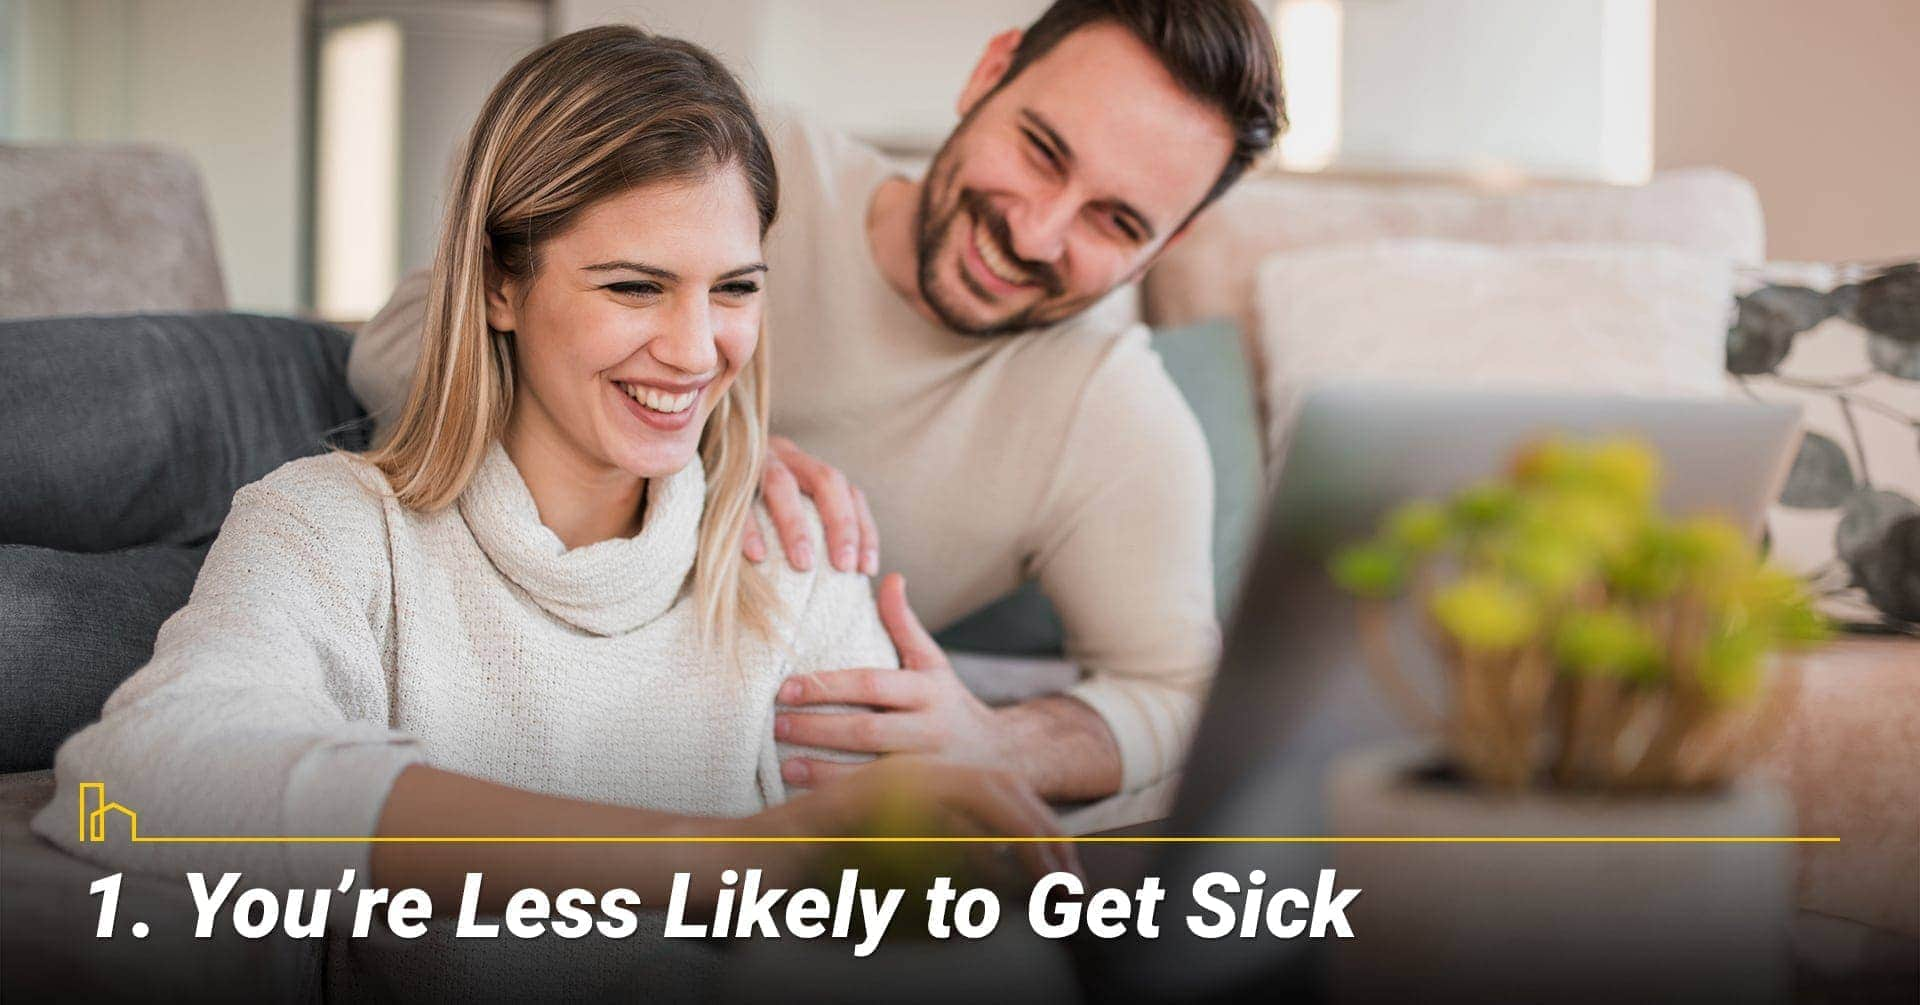 You're Less Likely to Get Sick, avoid getting sick